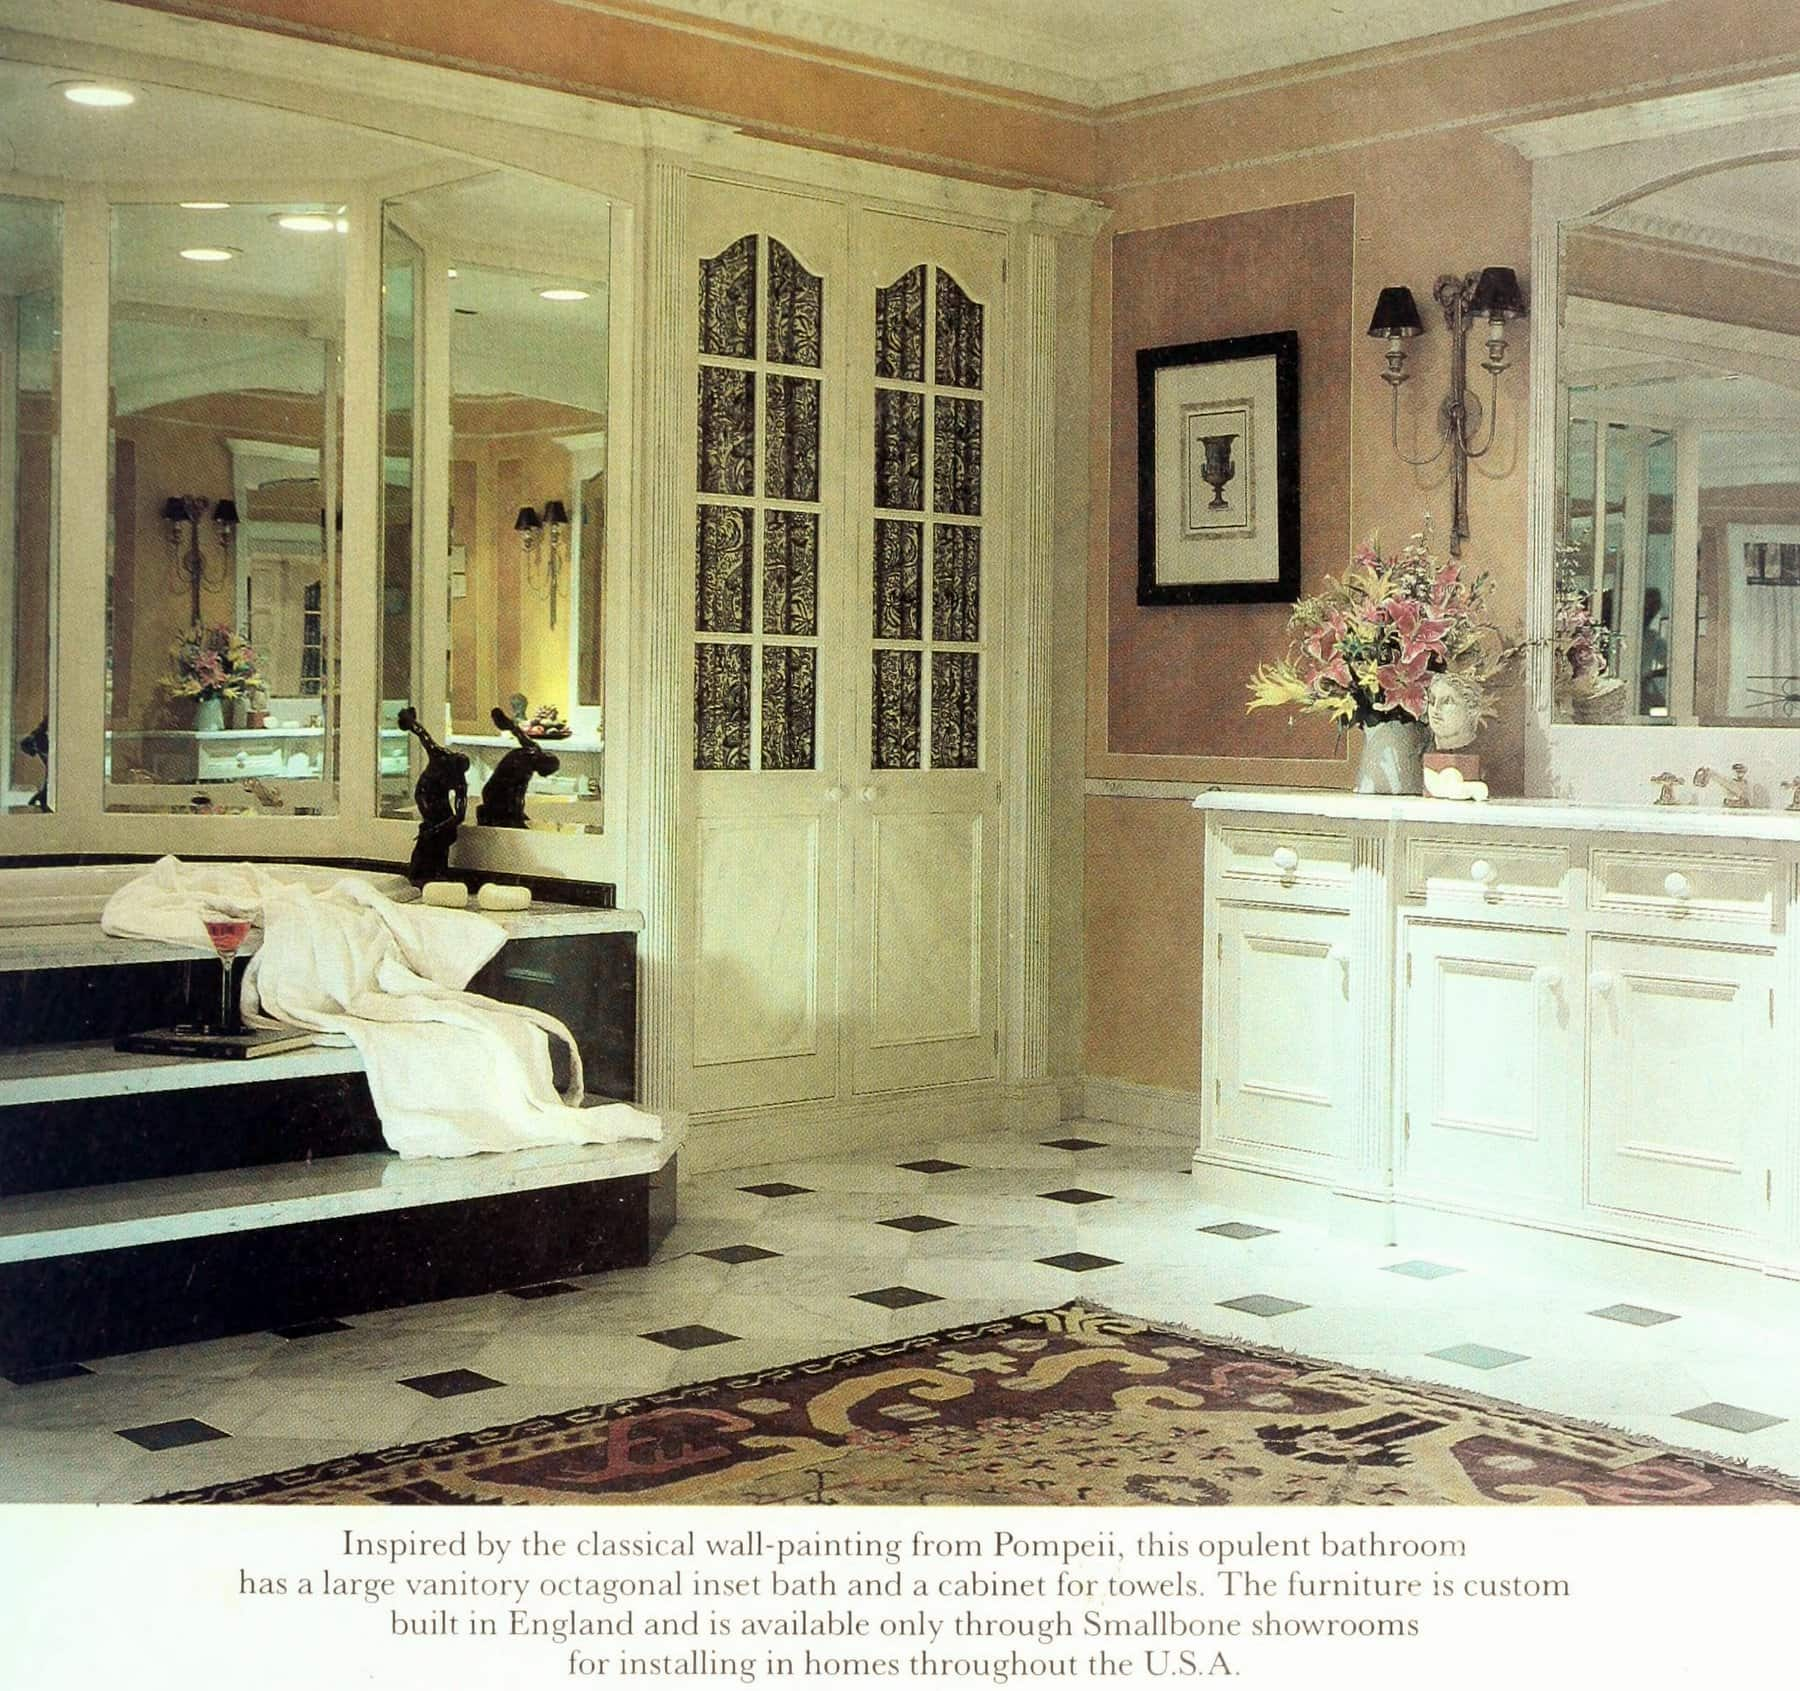 Vintage Smallbone Pompeii-inspired bathroom decor (1988)